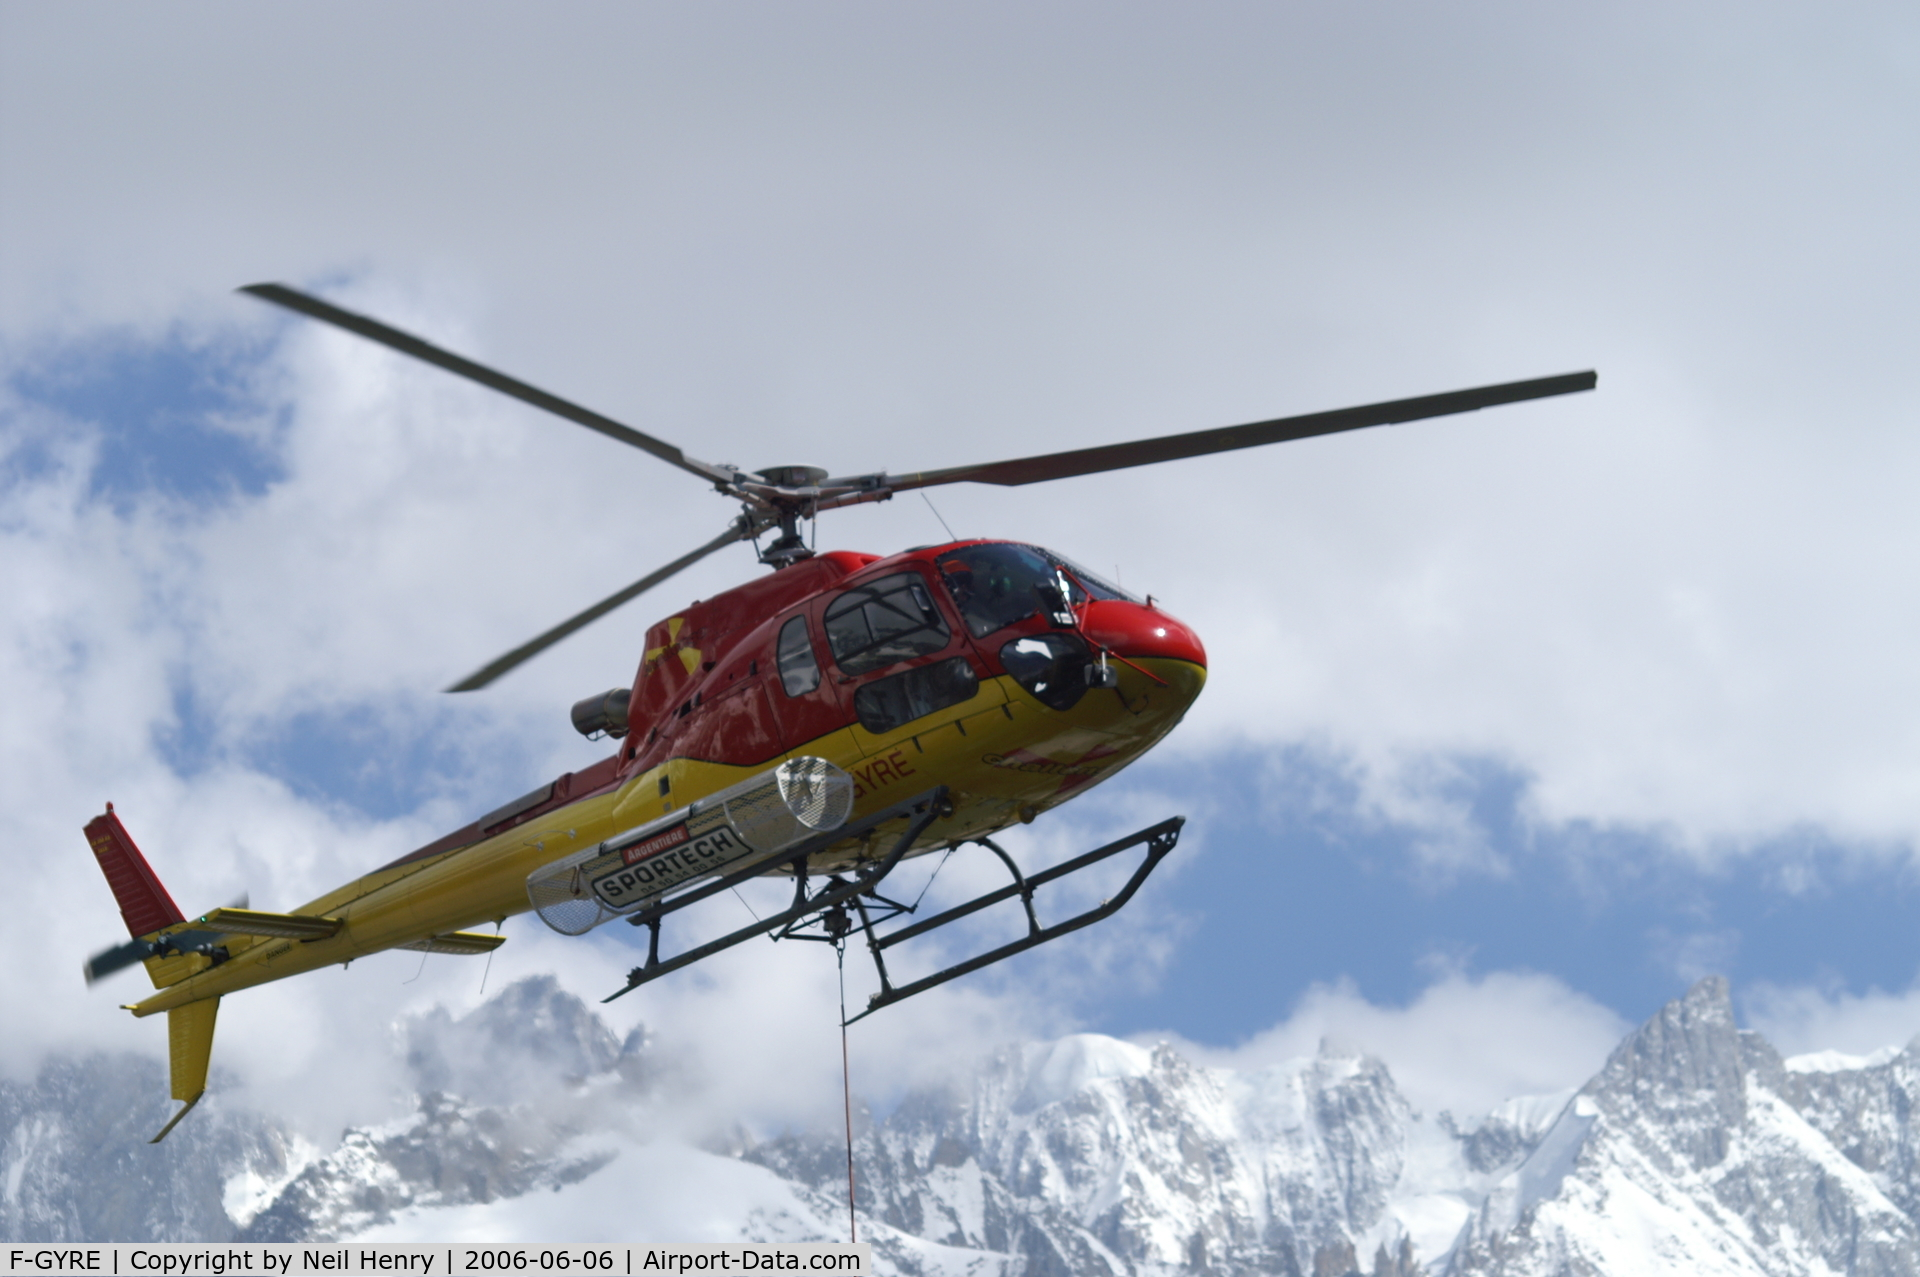 F-GYRE, Eurocopter AS-350B-3 Ecureuil C/N 3818, Rescue helicopter on training exercise over the Mer de Glace (glacier),  near Chamonix, France